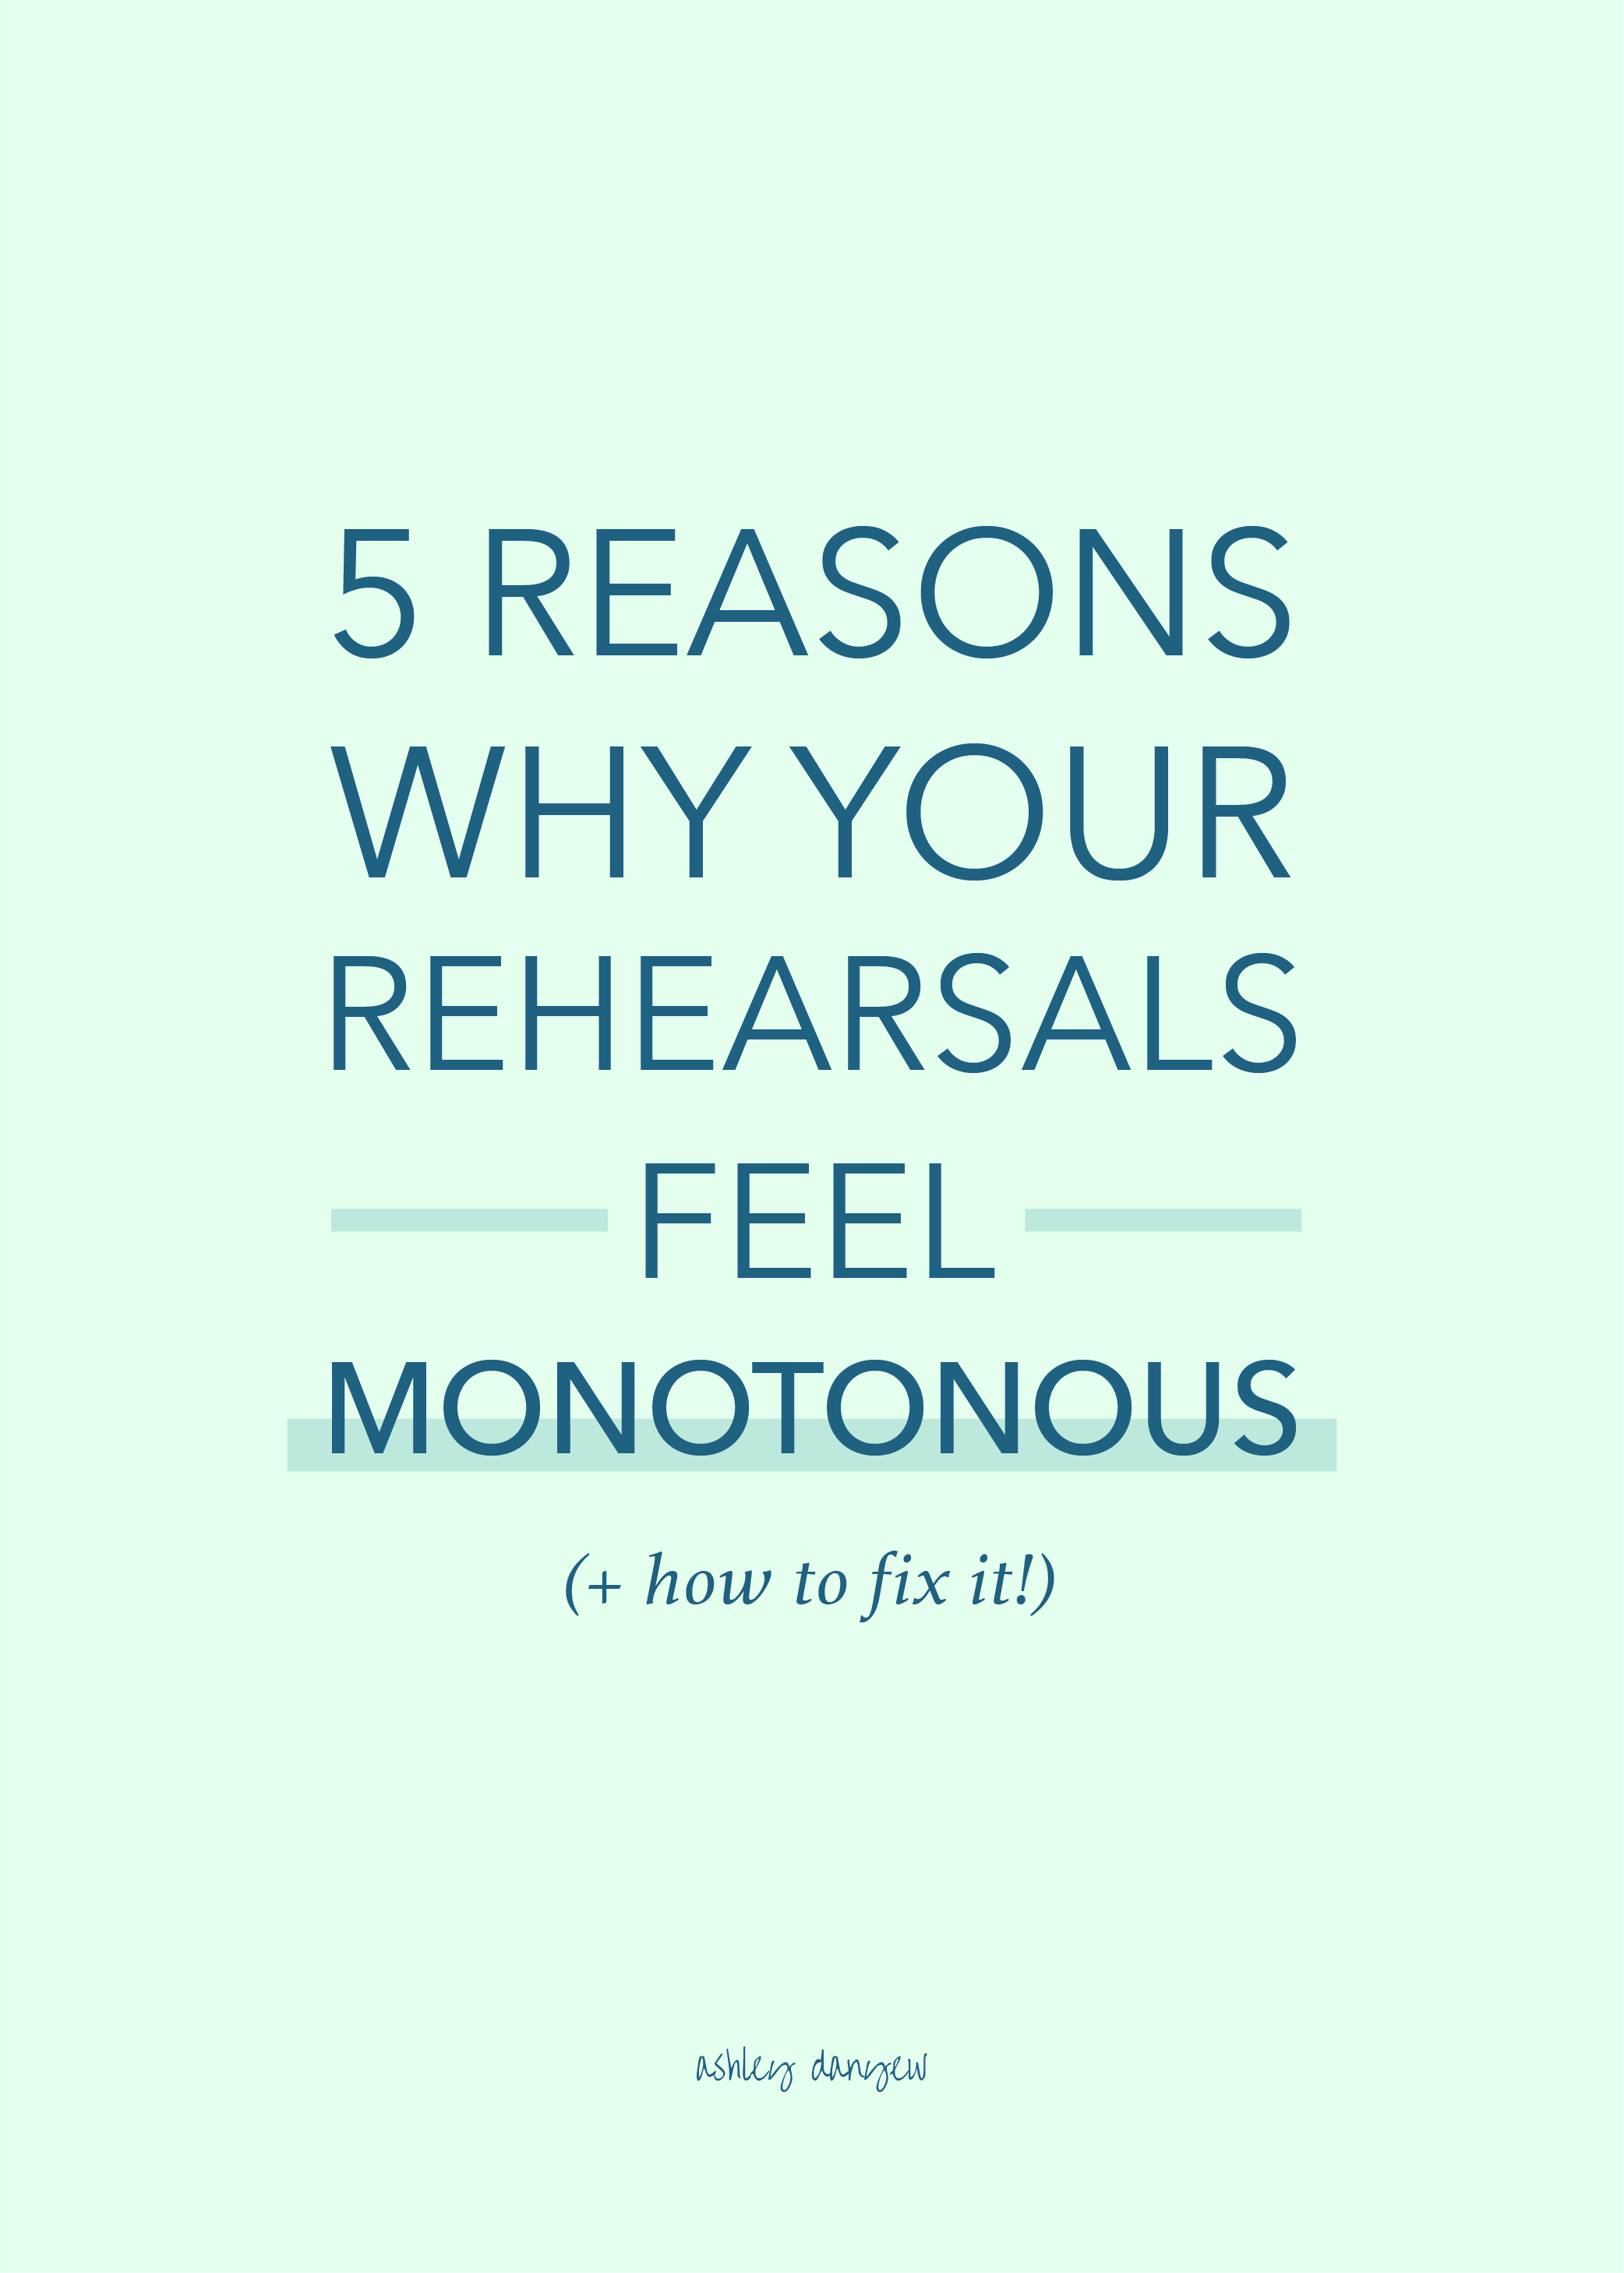 5 Reasons Why Your Rehearsals Feel Monotonous-05.png